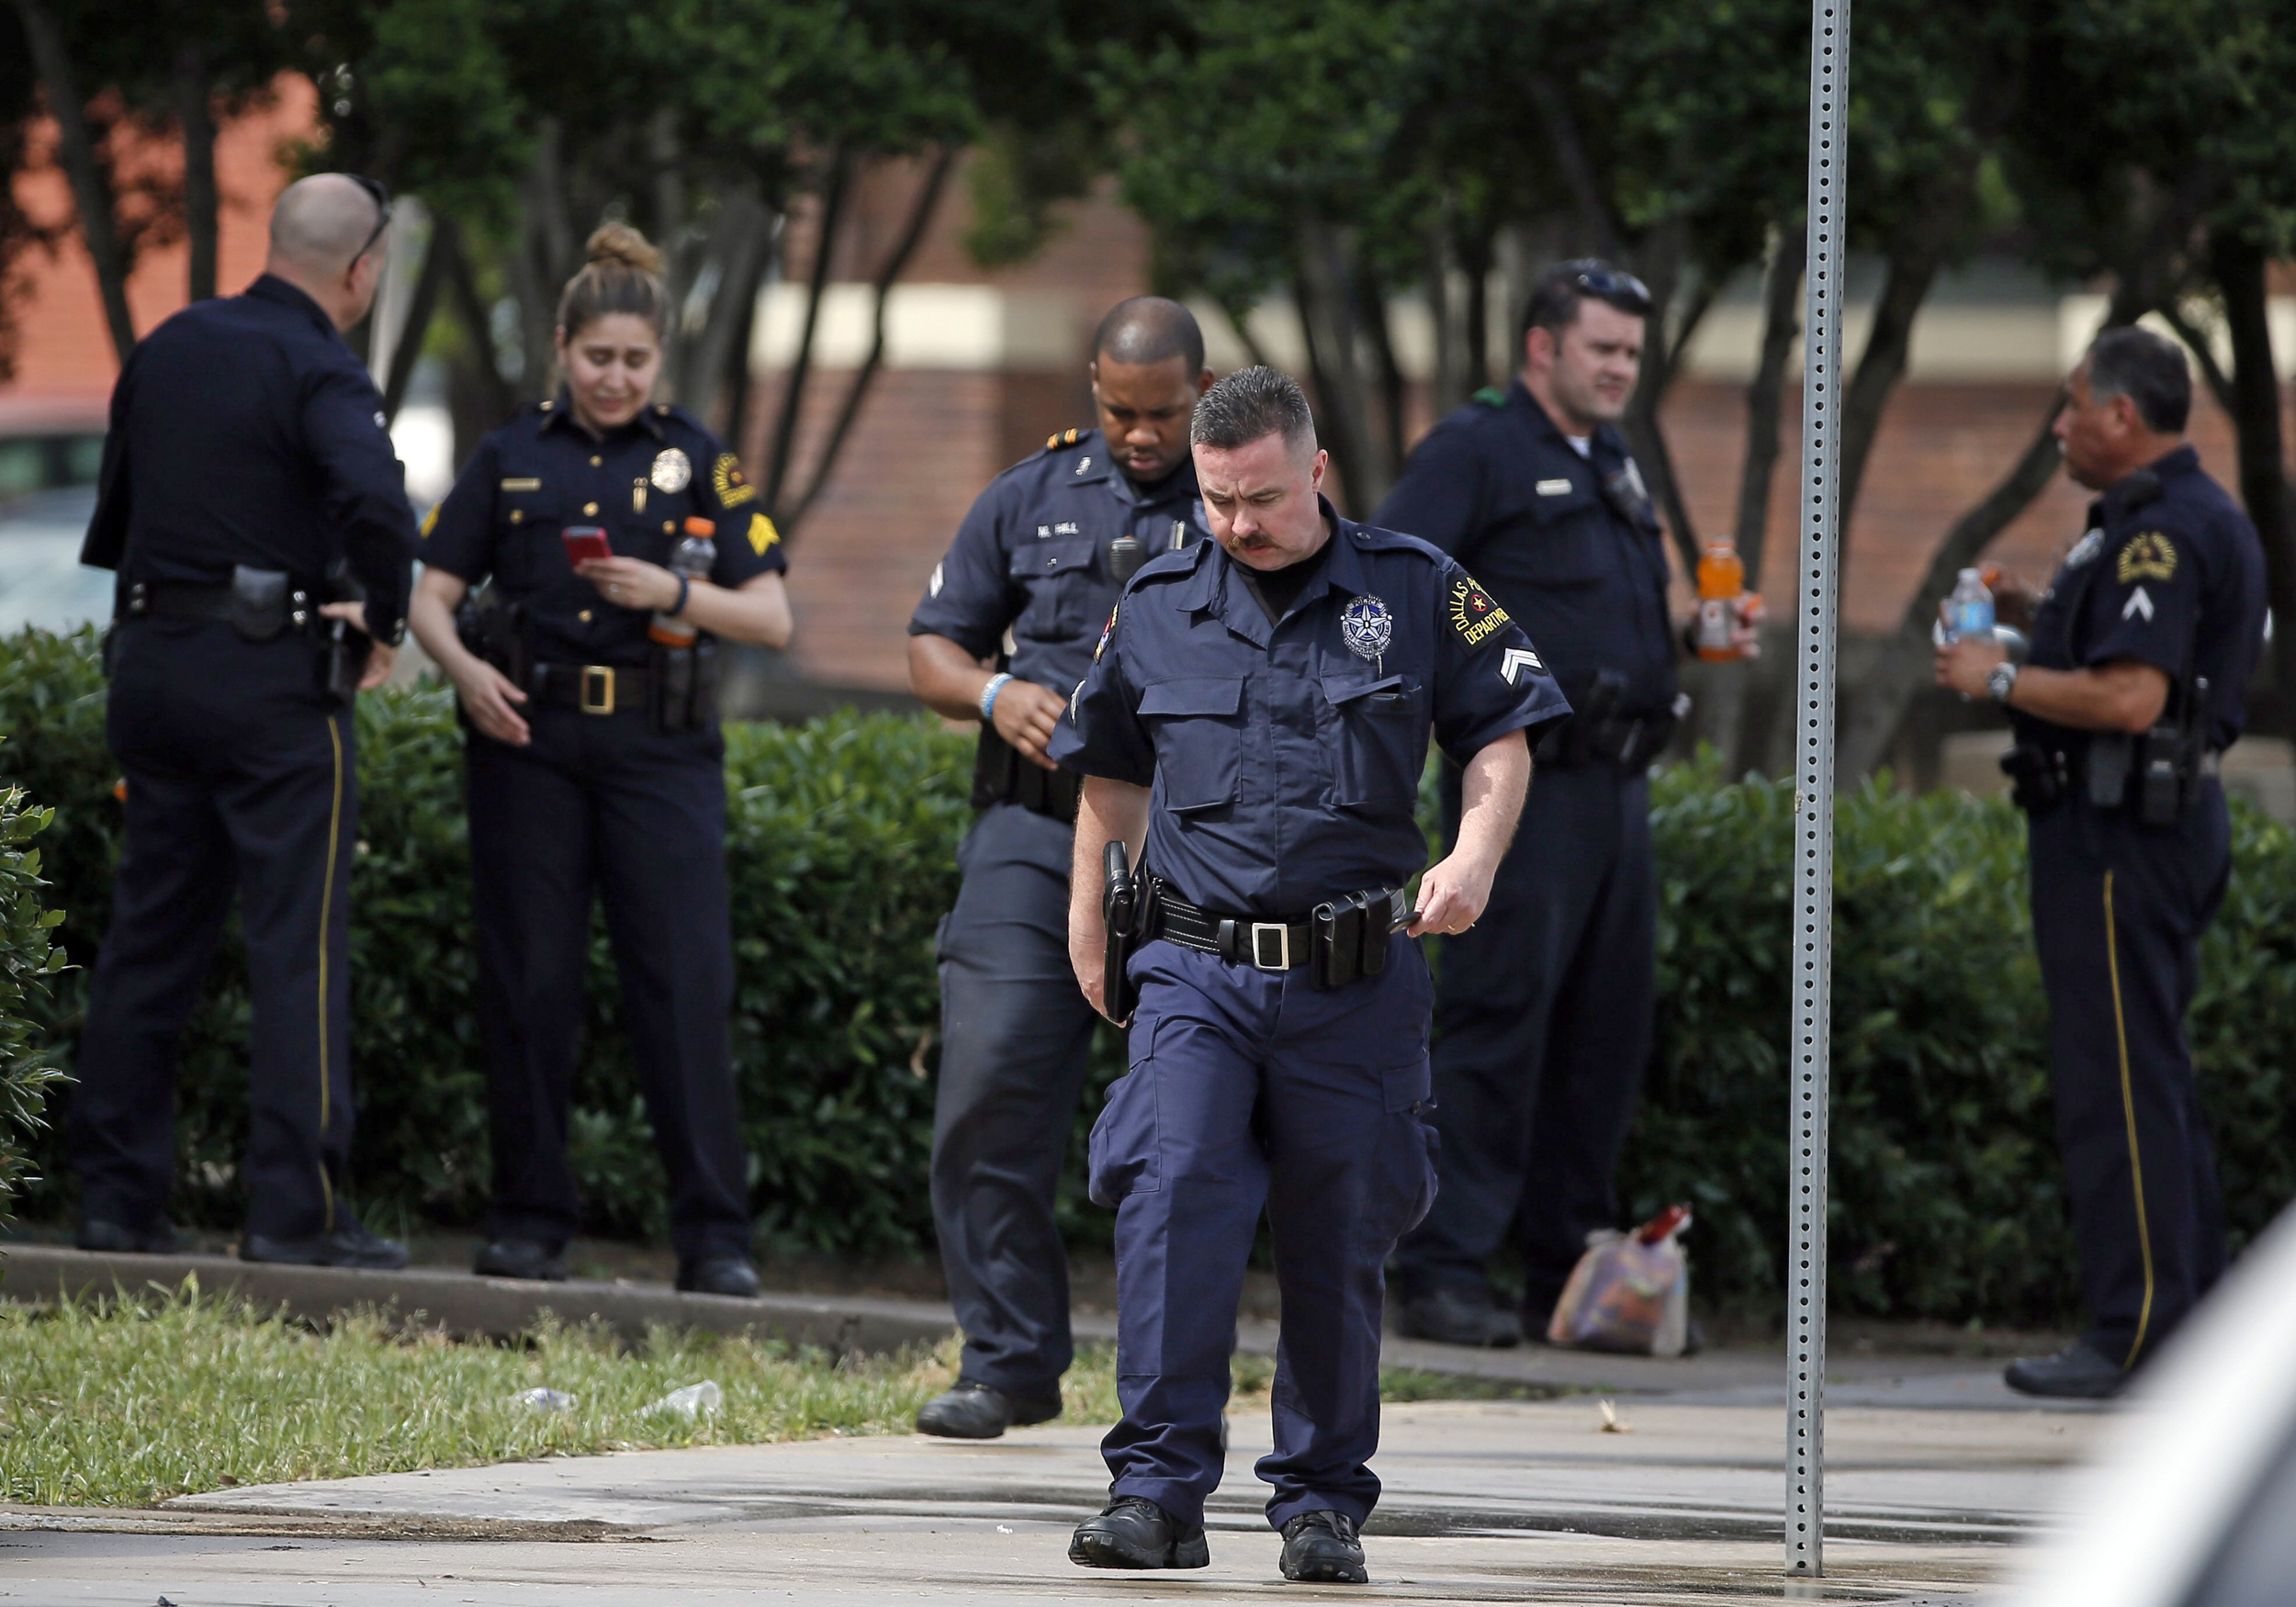 Dallas Police Attack: Suspect Killed After Being Shot by Sniper